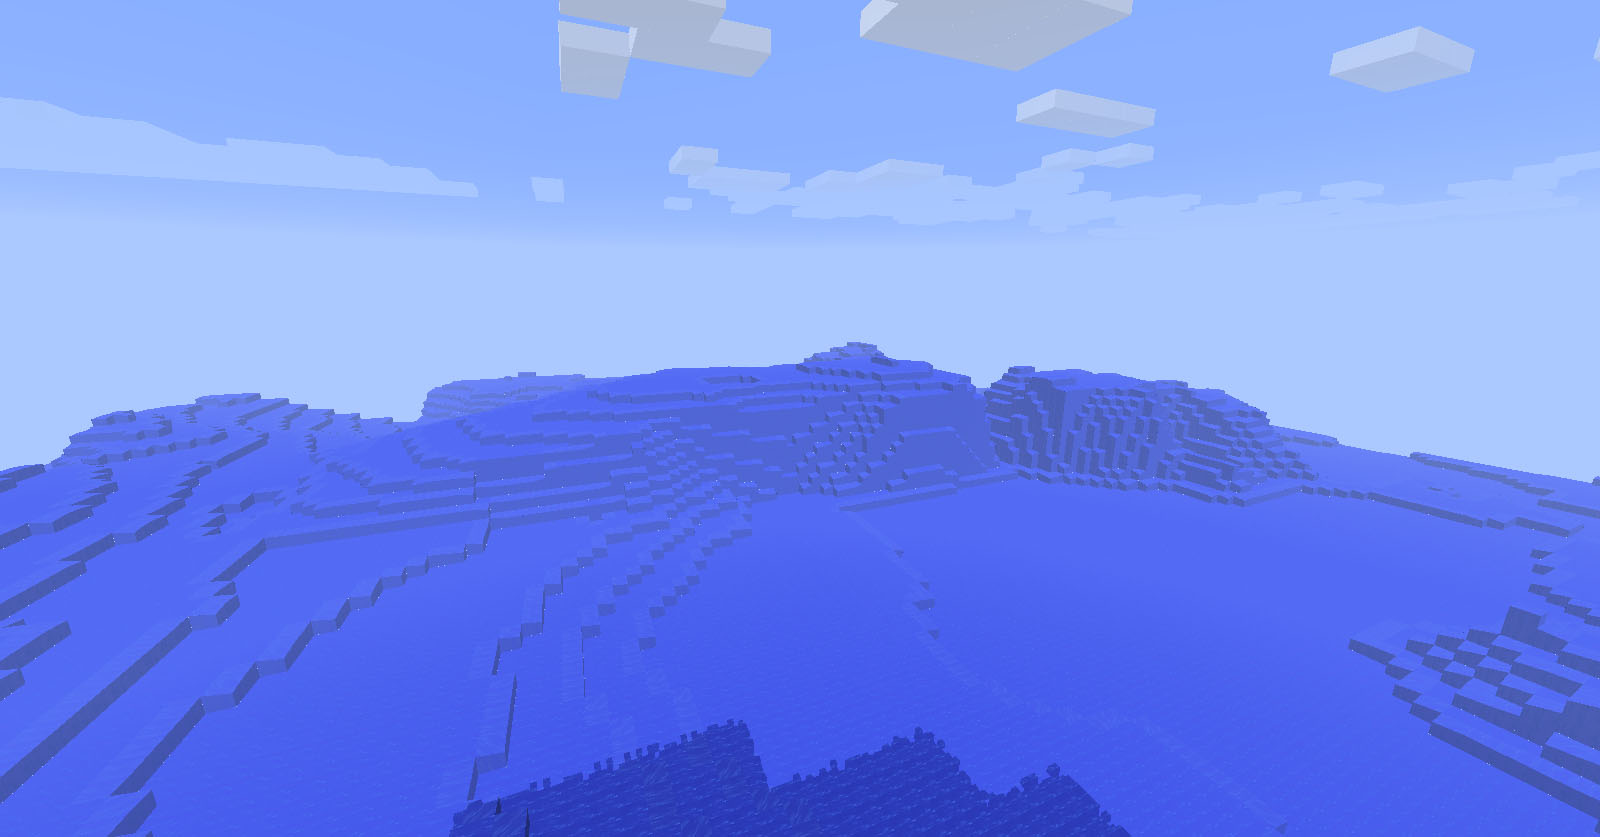 http://minecraft-forum.net/wp-content/uploads/2013/06/f8cd6__Famous-2-Mod-2.jpg